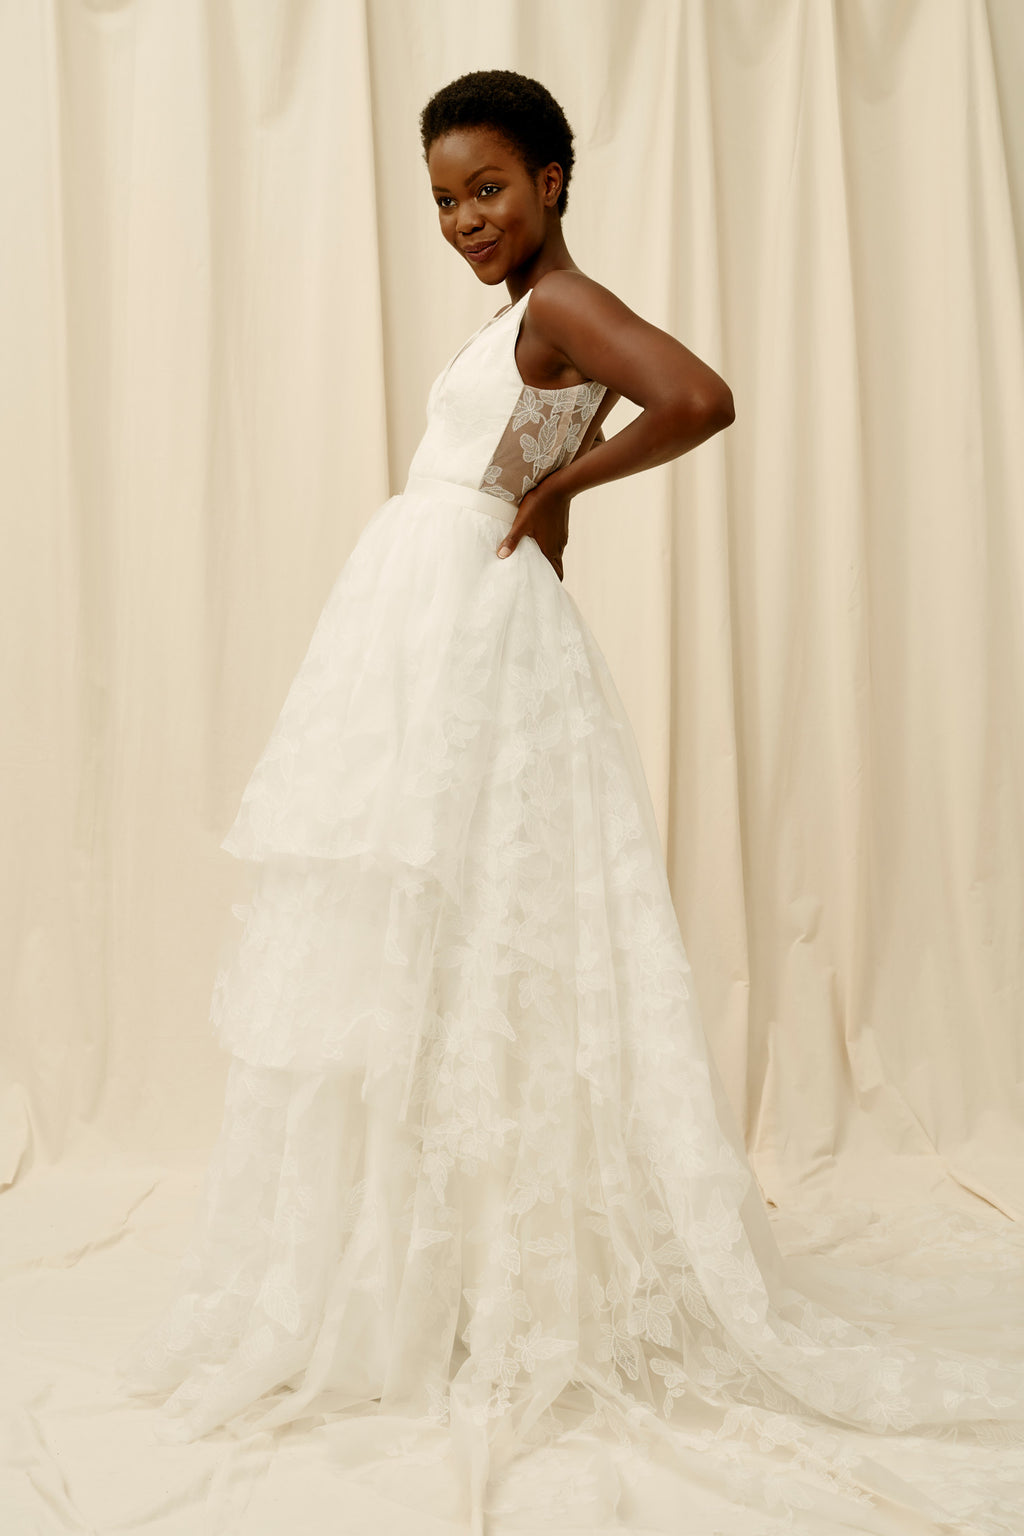 Unlined open back wedding dress with floral lace and a 3 tiered skirt